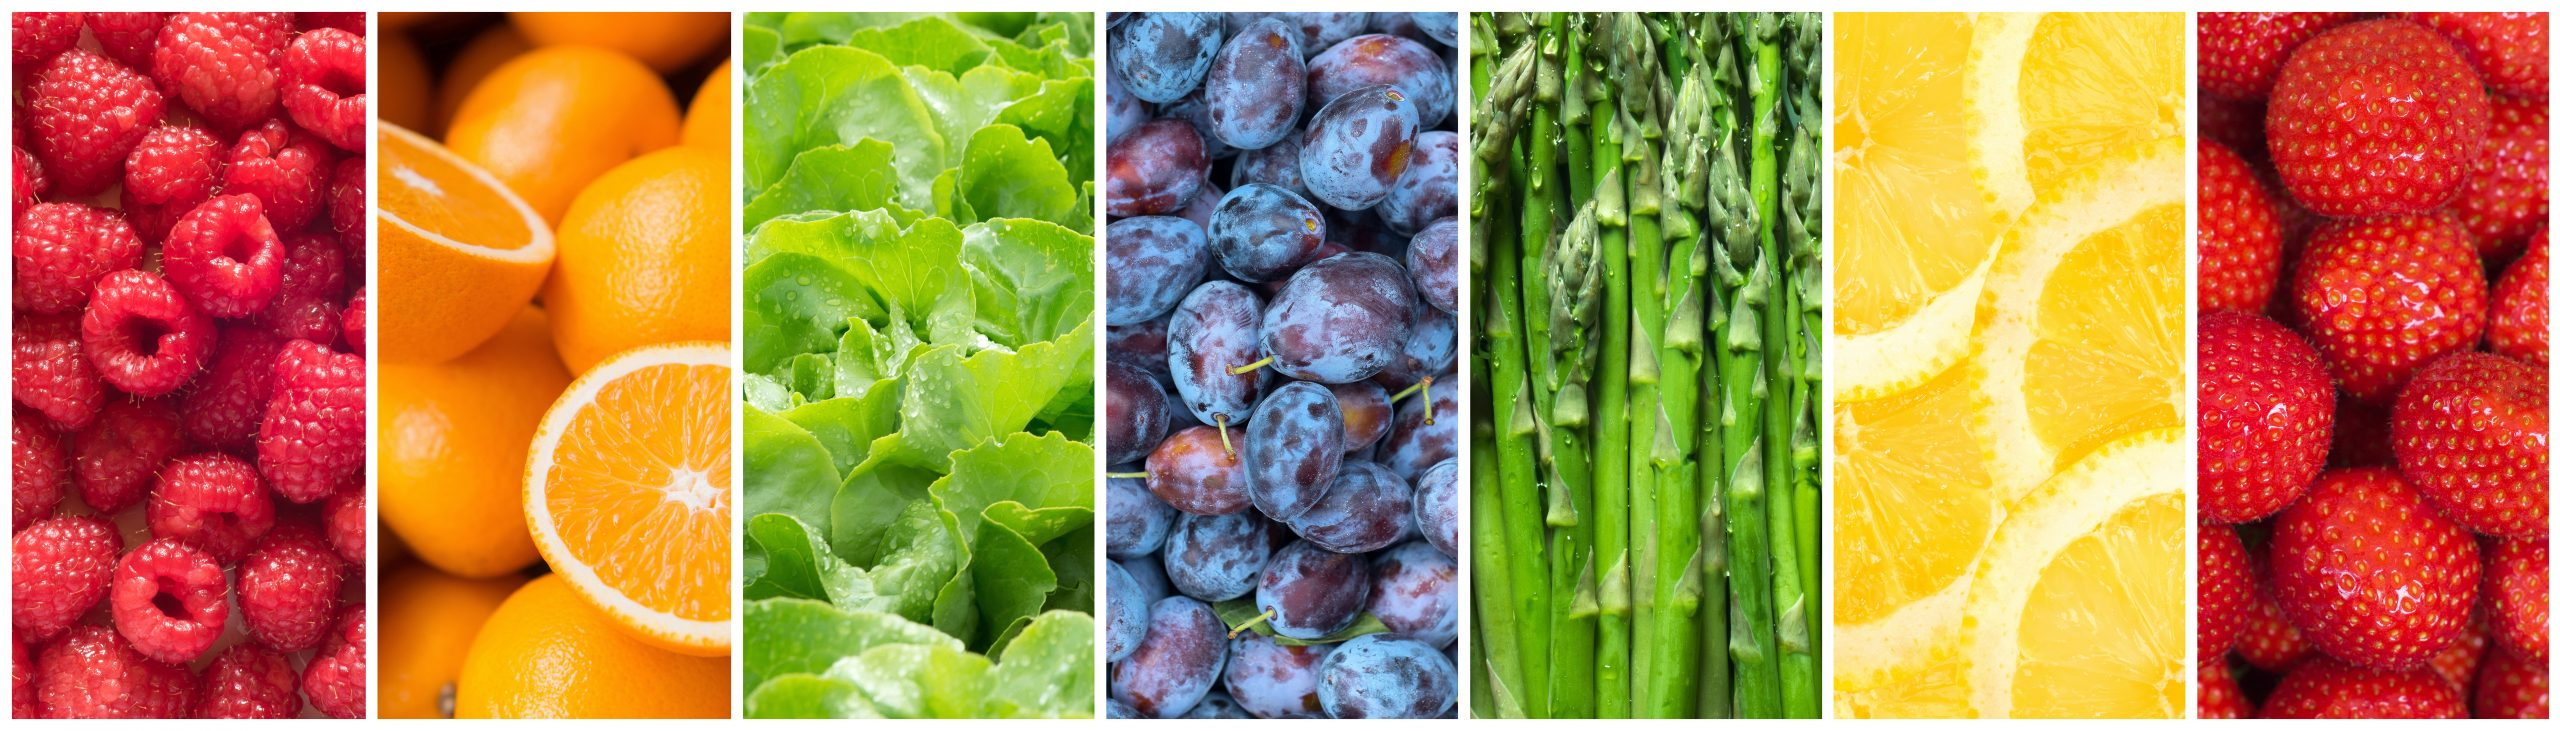 Fruits and Vegetables, Healthy food backgrounds